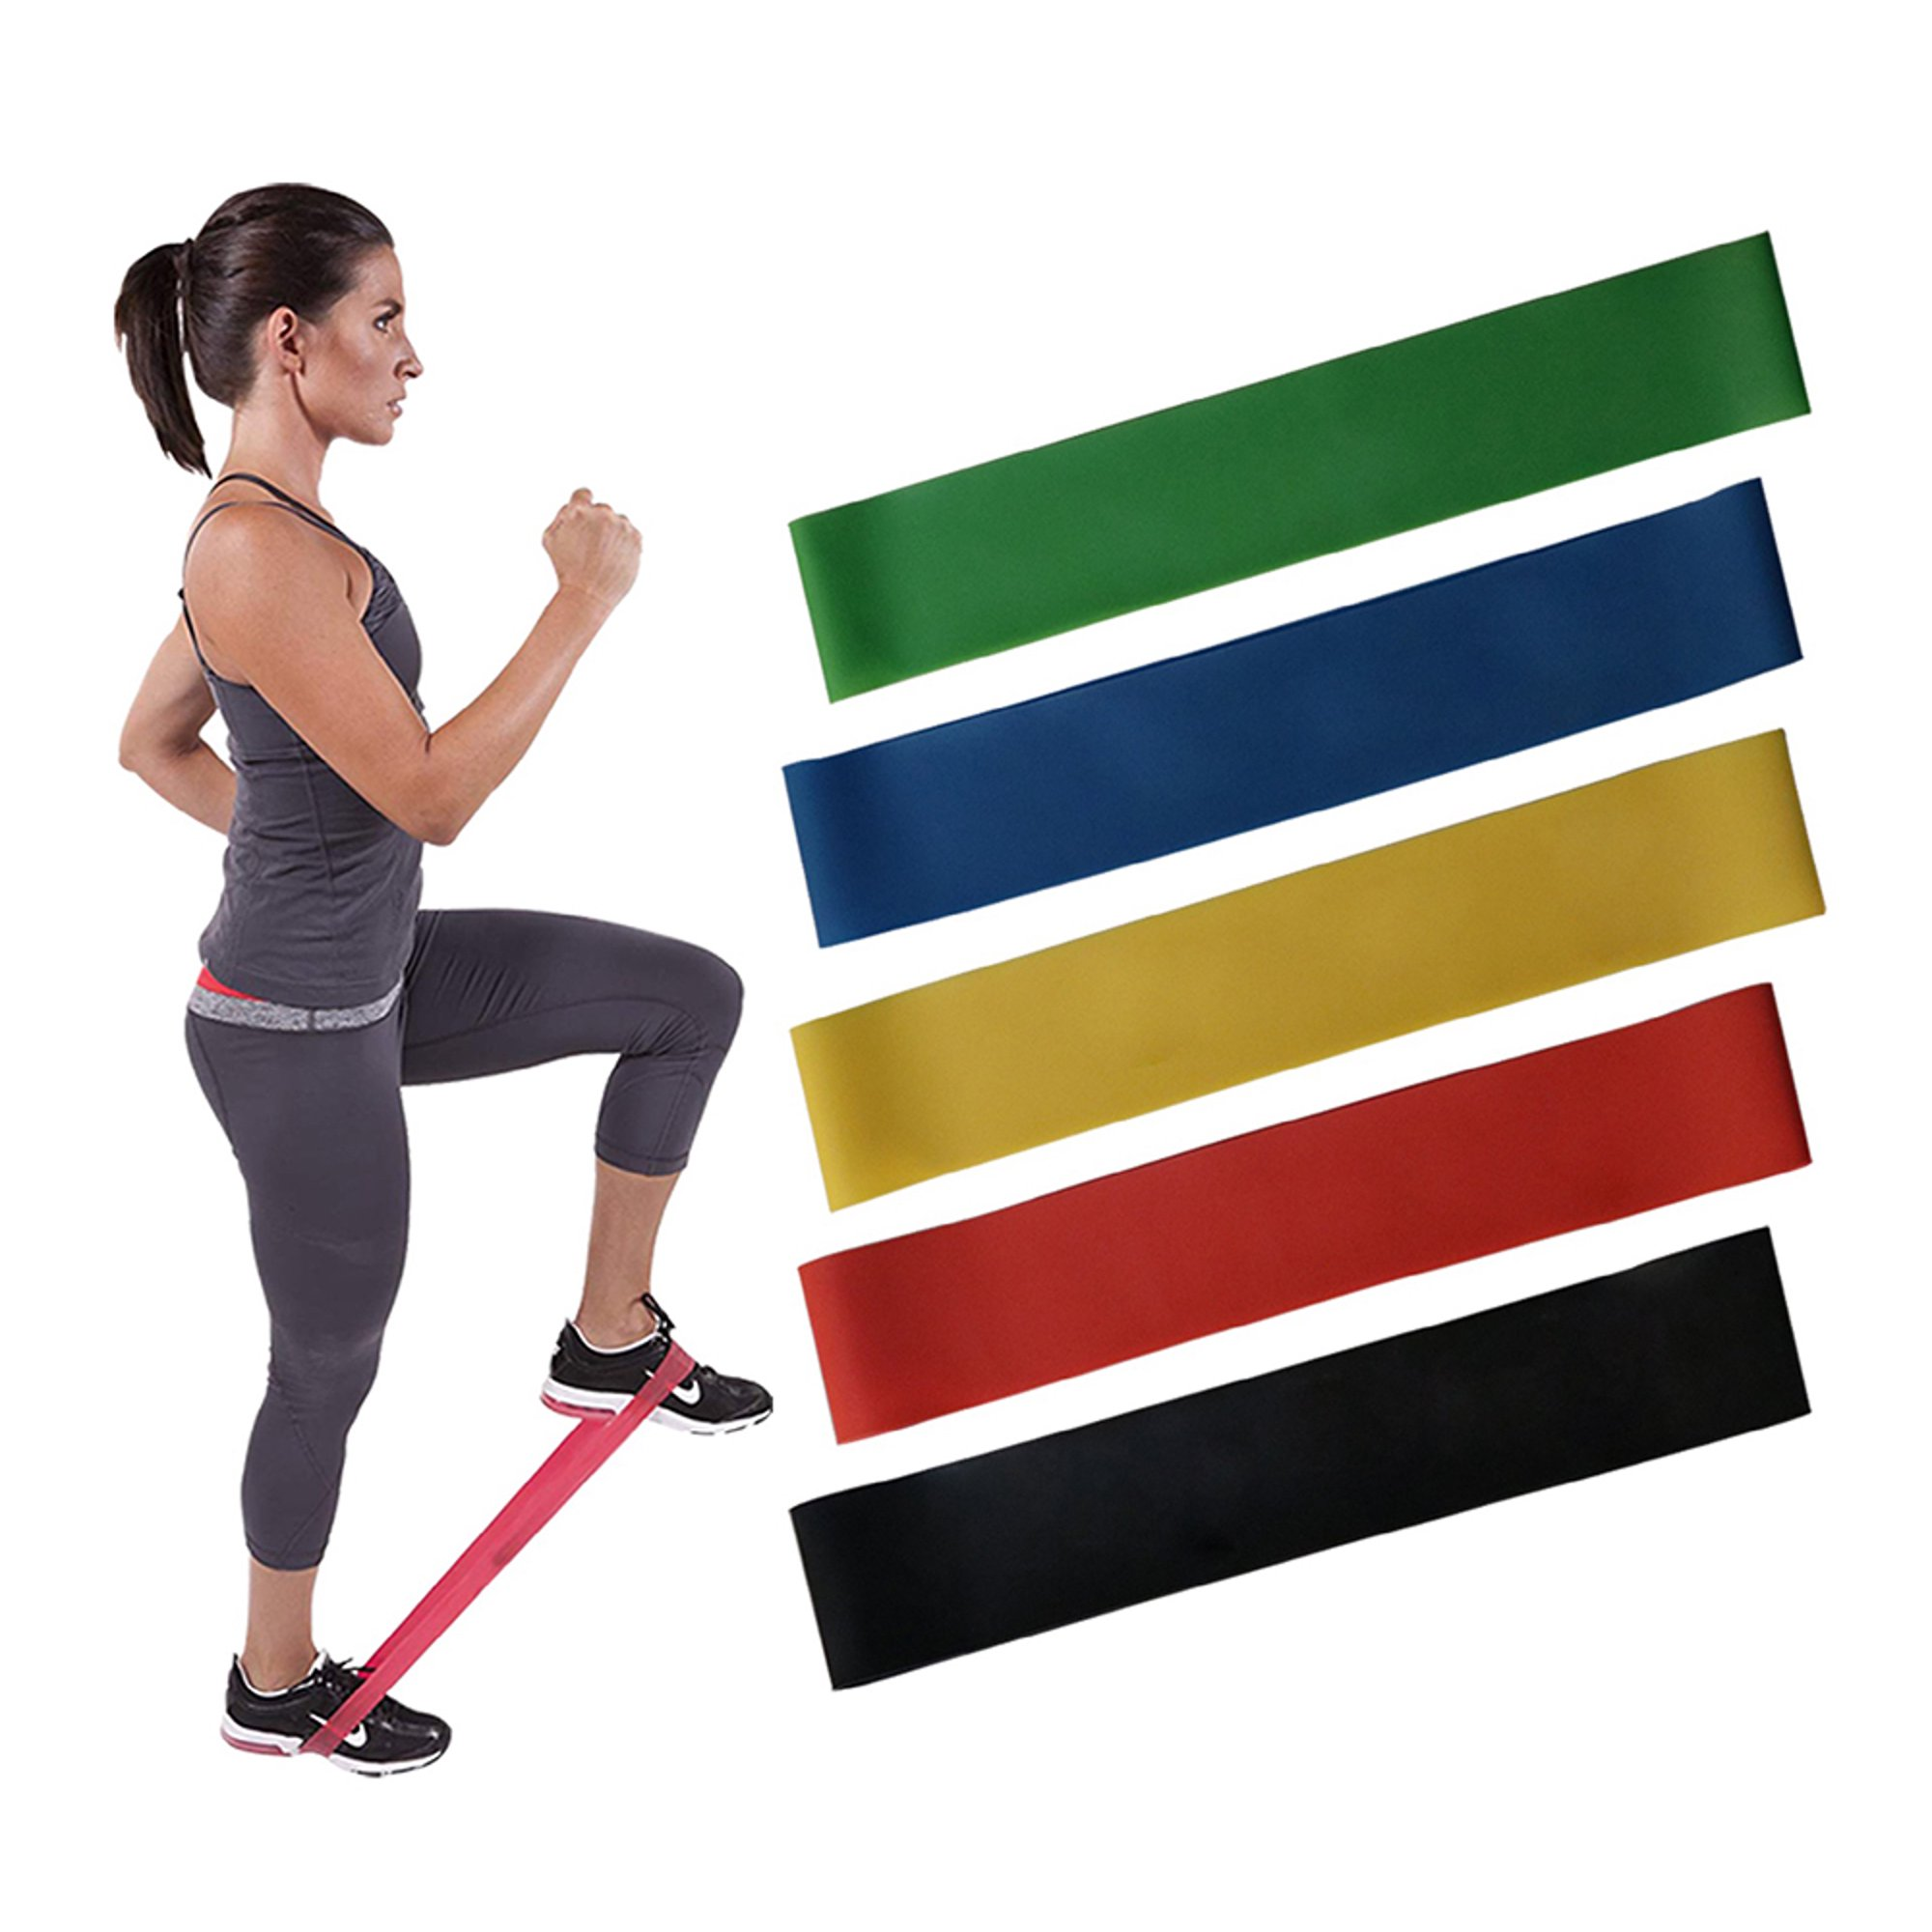 Firmou Fit Simplify Resistance Loop Exercise Bands for Home ...